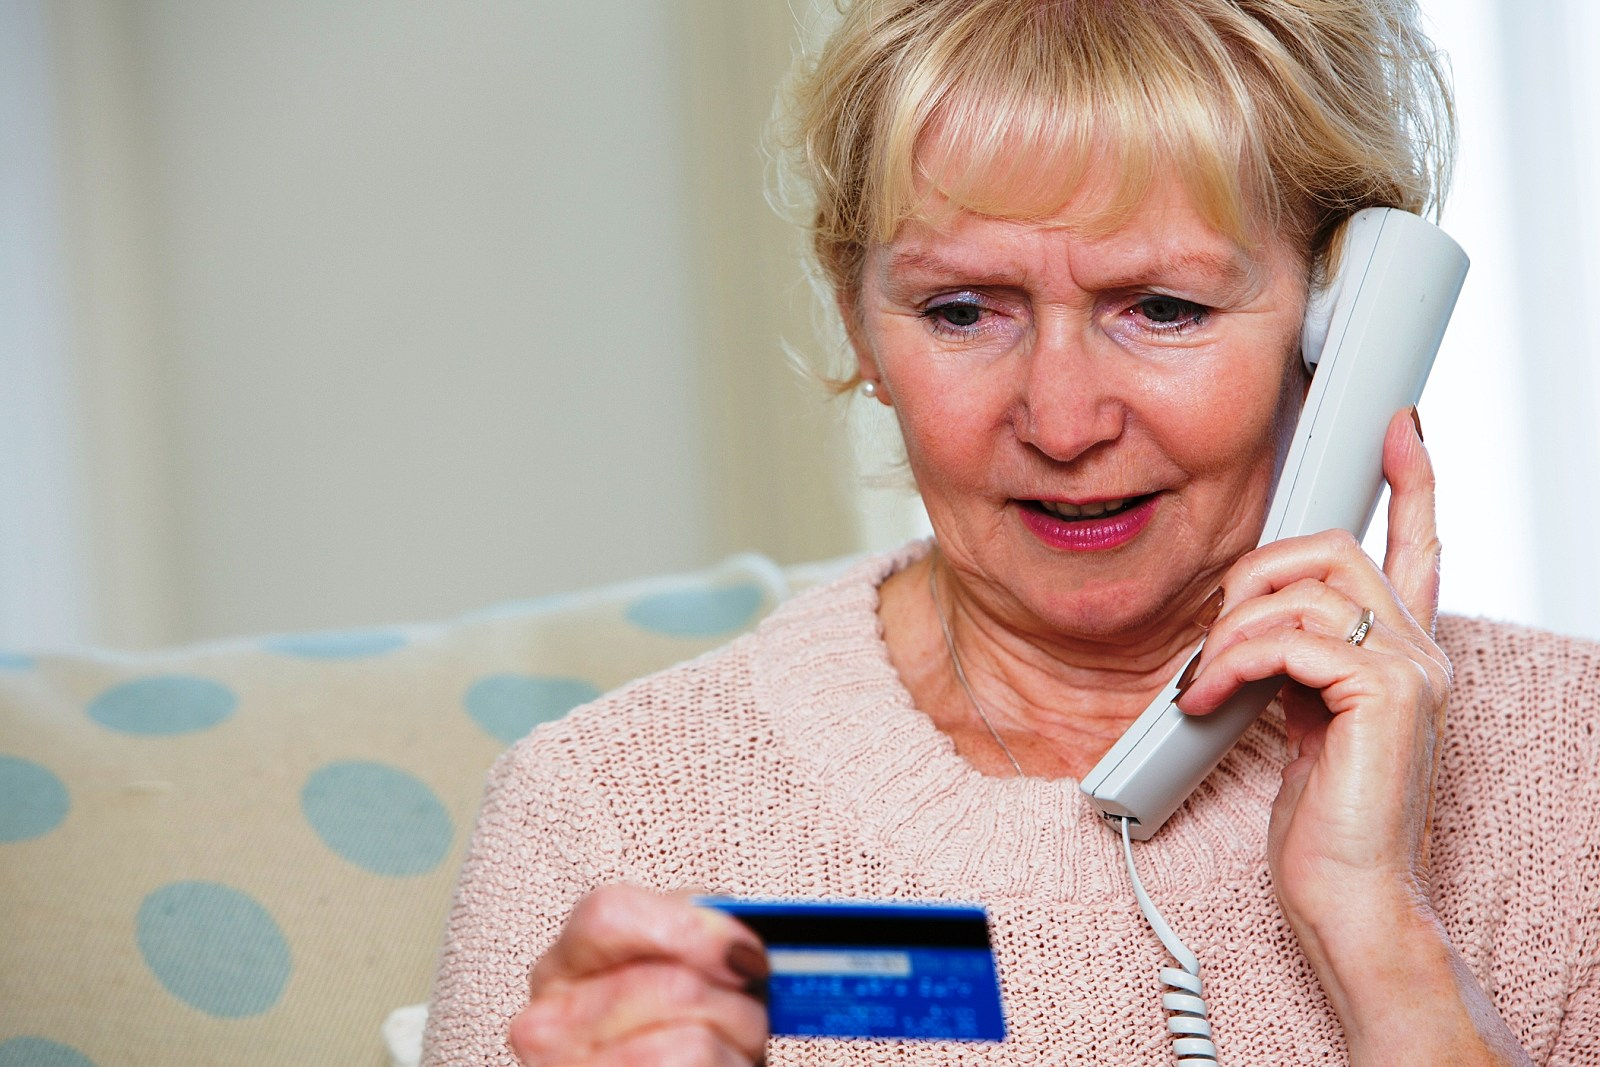 Woman on Phone Giving Out Credit Card Number